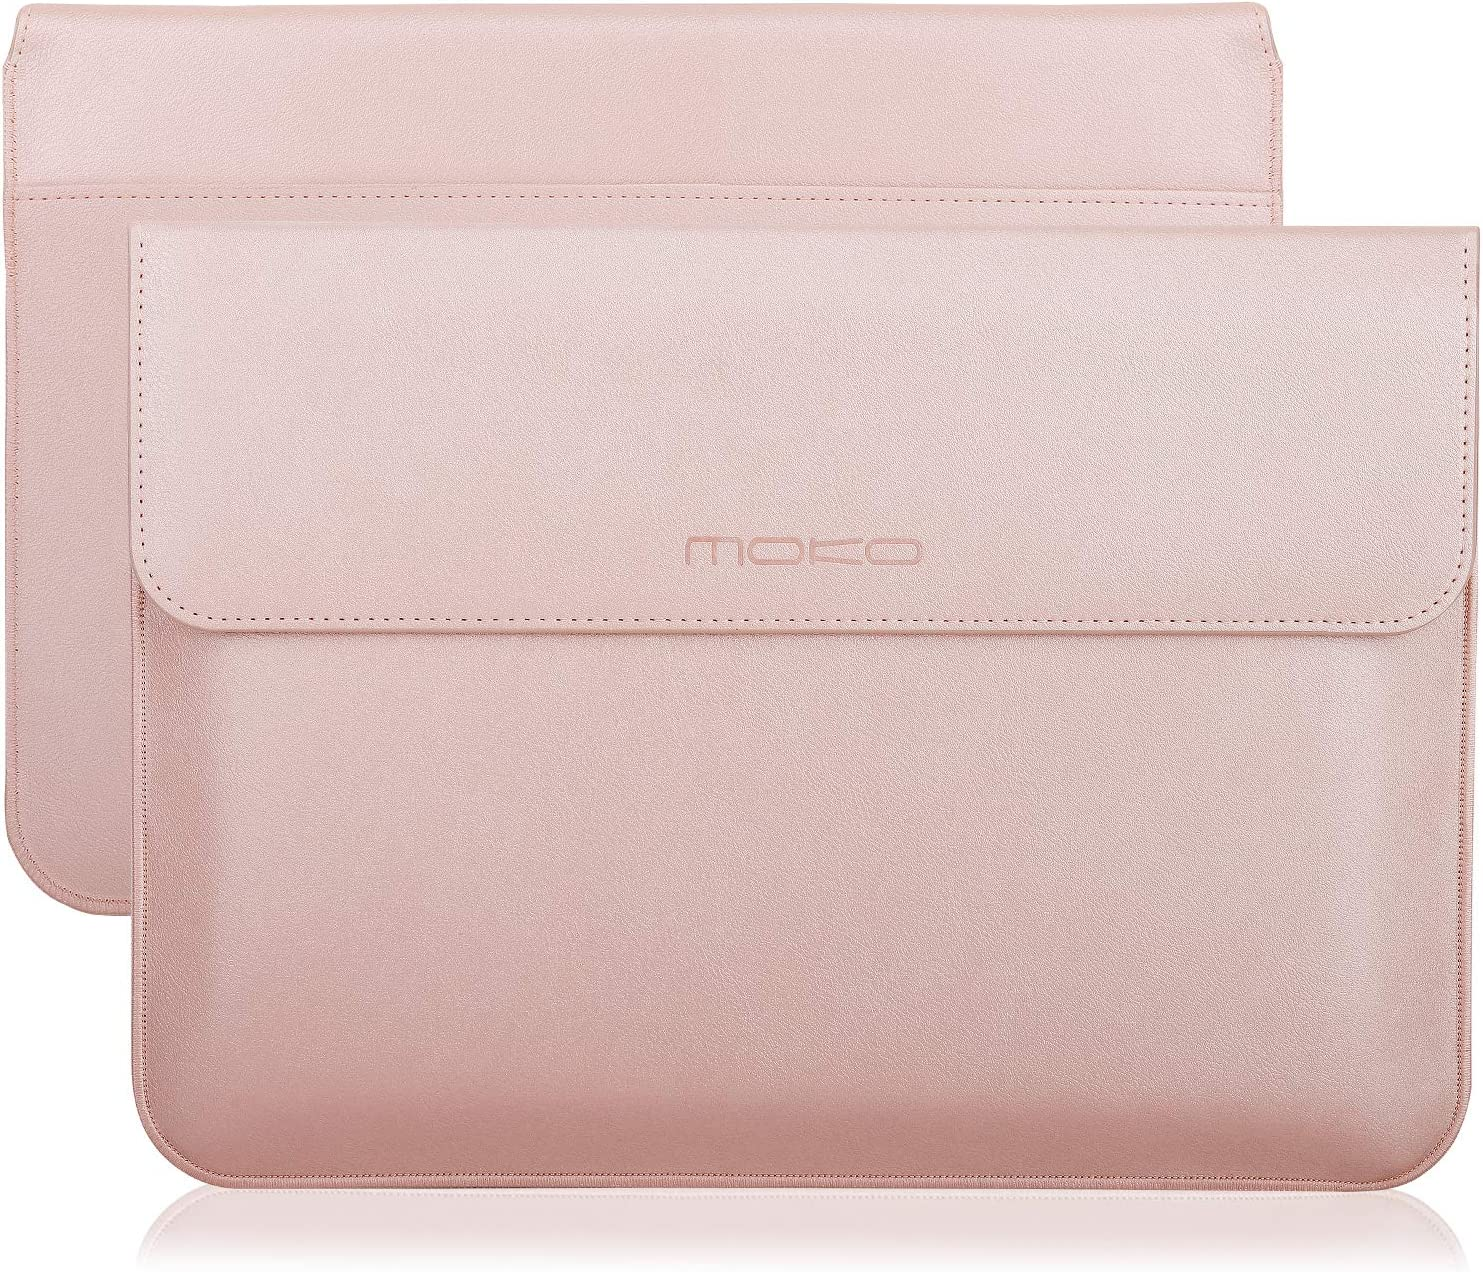 "MoKo 13-13.3 Inch Laptop Sleeve Case Compatible with MacBook Air 13-inch Retina, MacBook Pro 13"", Dell XPS 13, Samsung Notebook 13.3"" PU Leather Envelope Case with Document Pocket, Rose Gold"